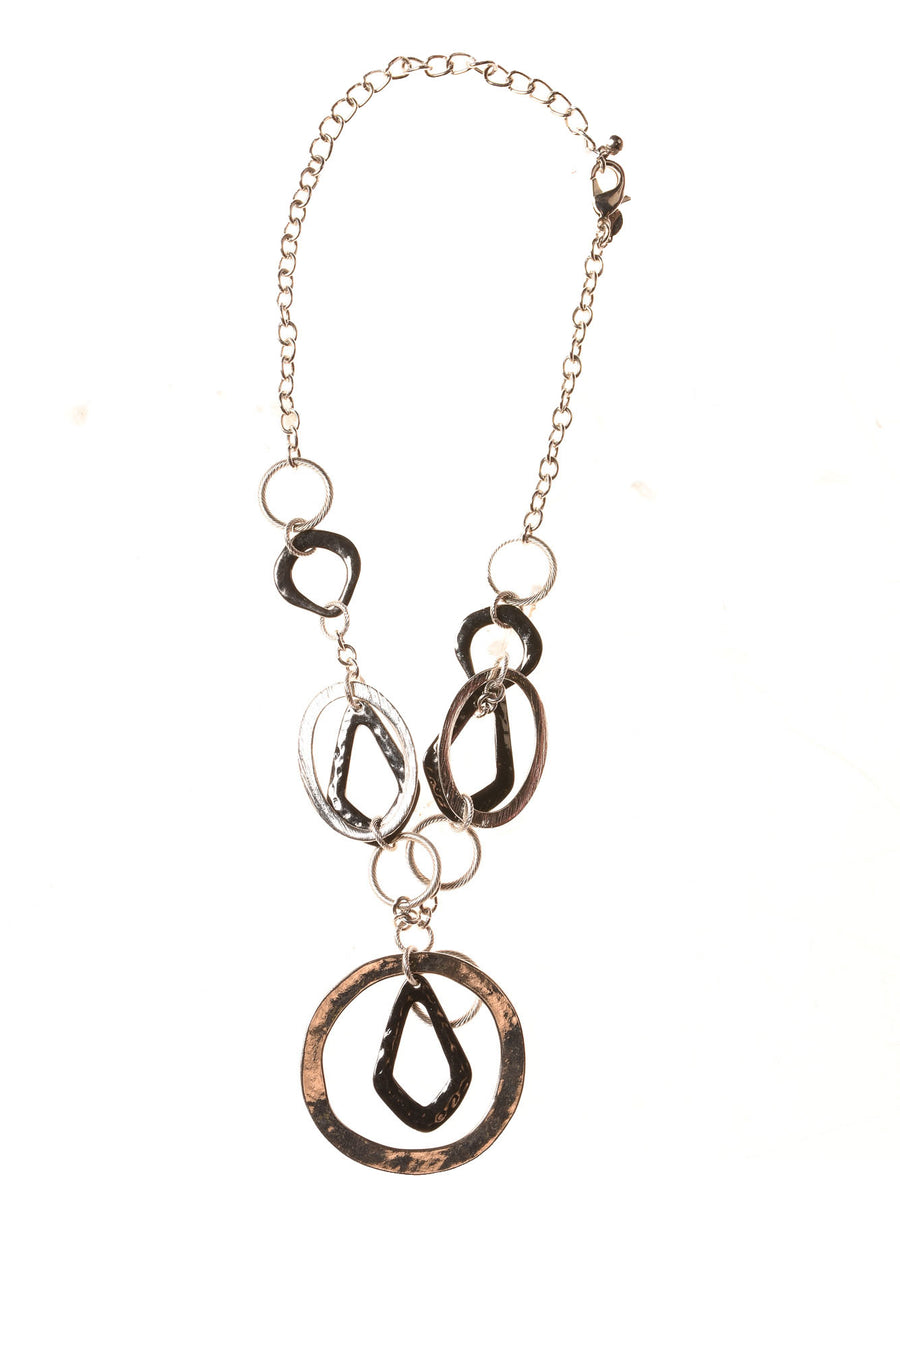 USED Chico's Women's Necklace N/A Silver & Black